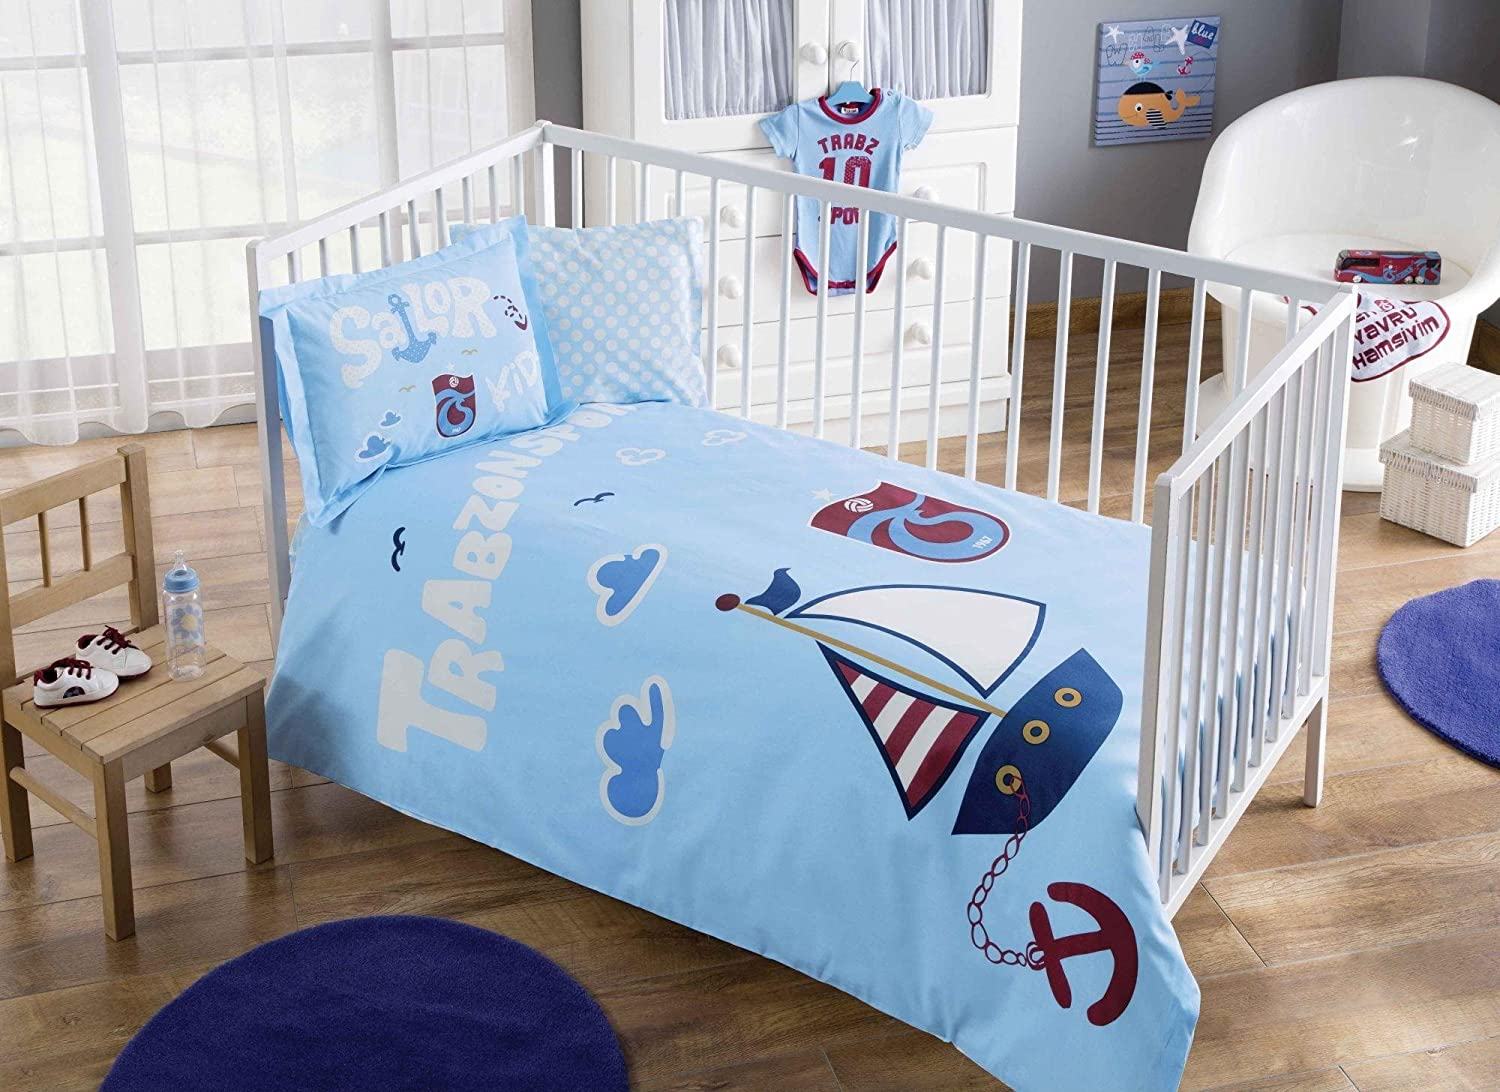 100% Organic Cotton Soft and Healthy Baby Crib Bed Duvet Cover Set 4 Pieces, Trabzonspor Sailor Baby Bedding Set TAC